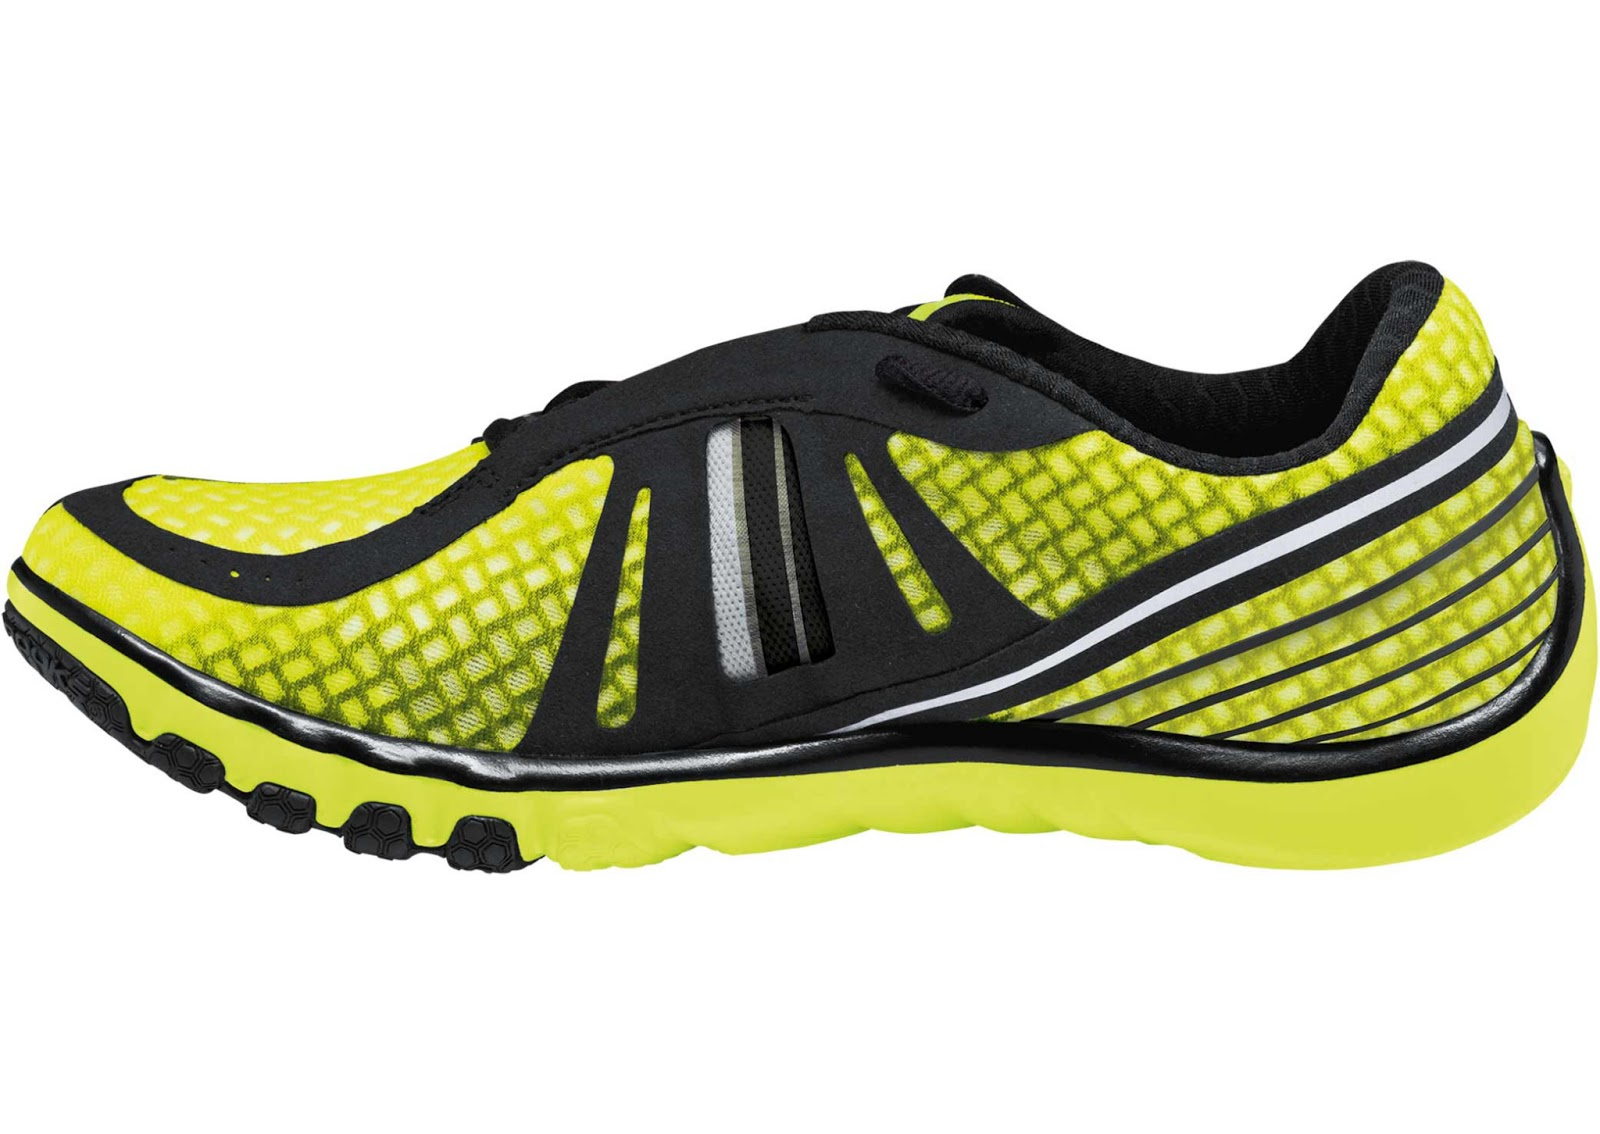 Reebok Running Shoes Clearance